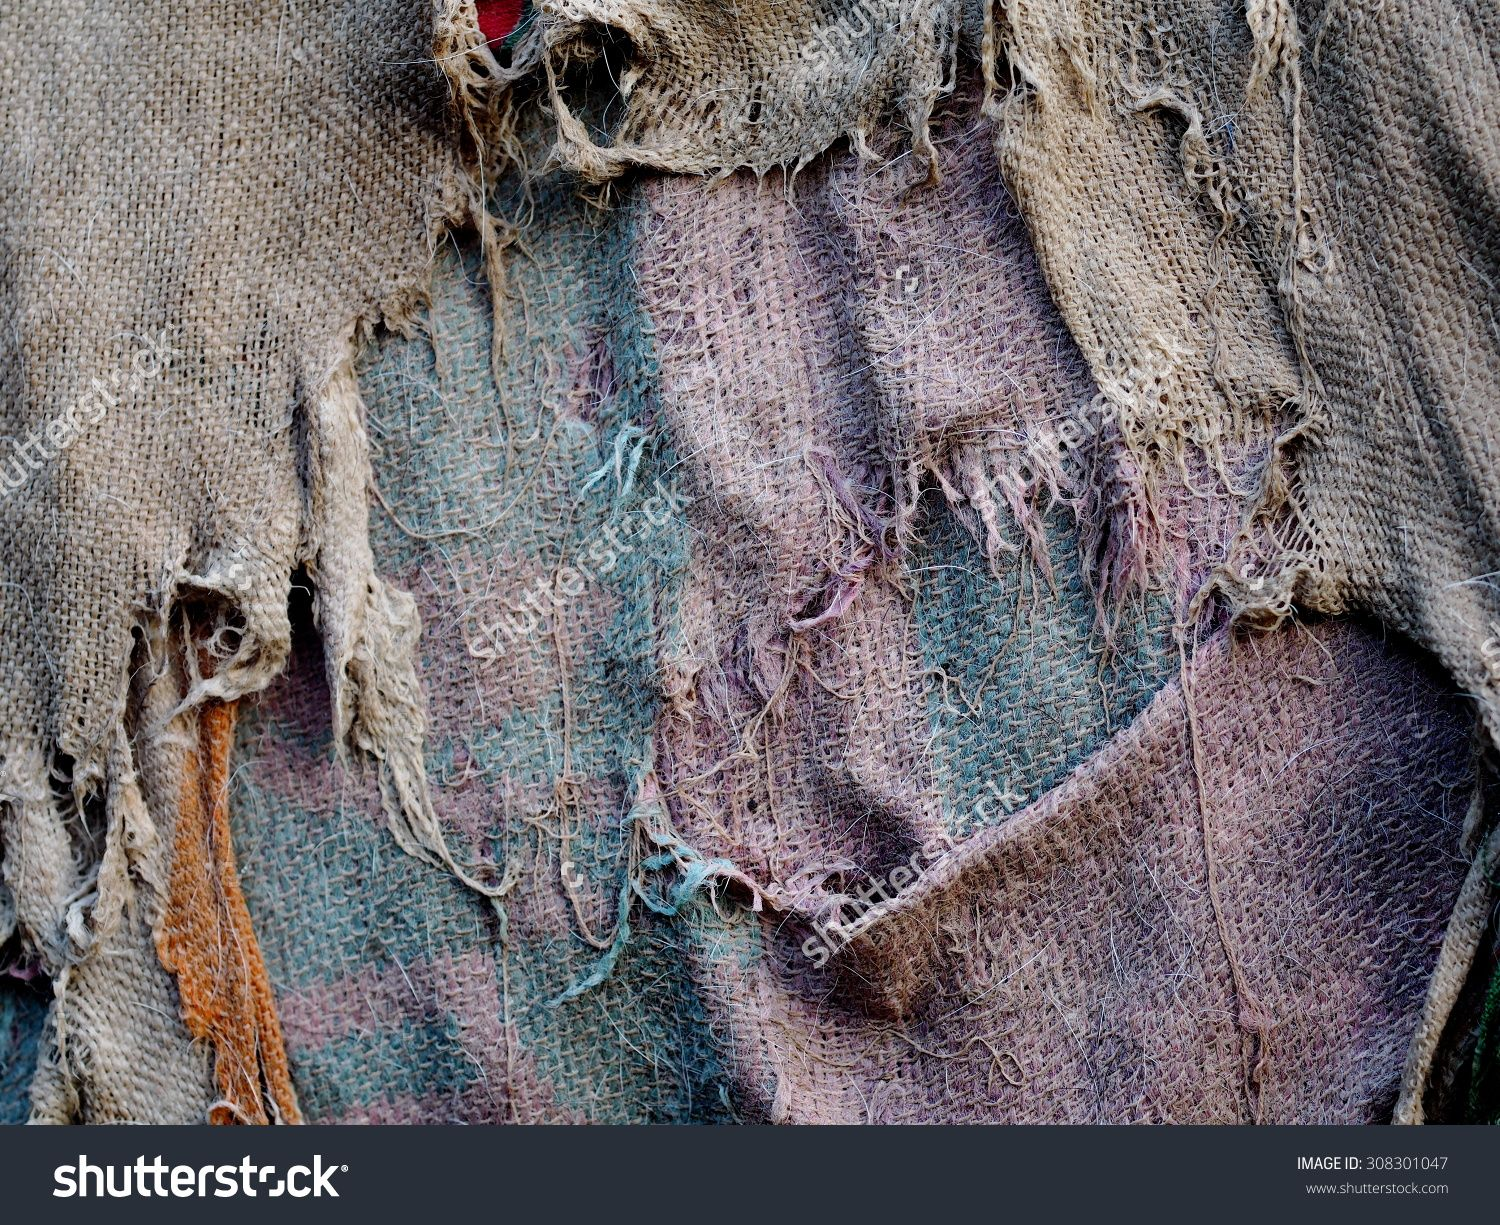 Stock Photo Old Dirty Wet Tatters Rag Cloth For Outdoor